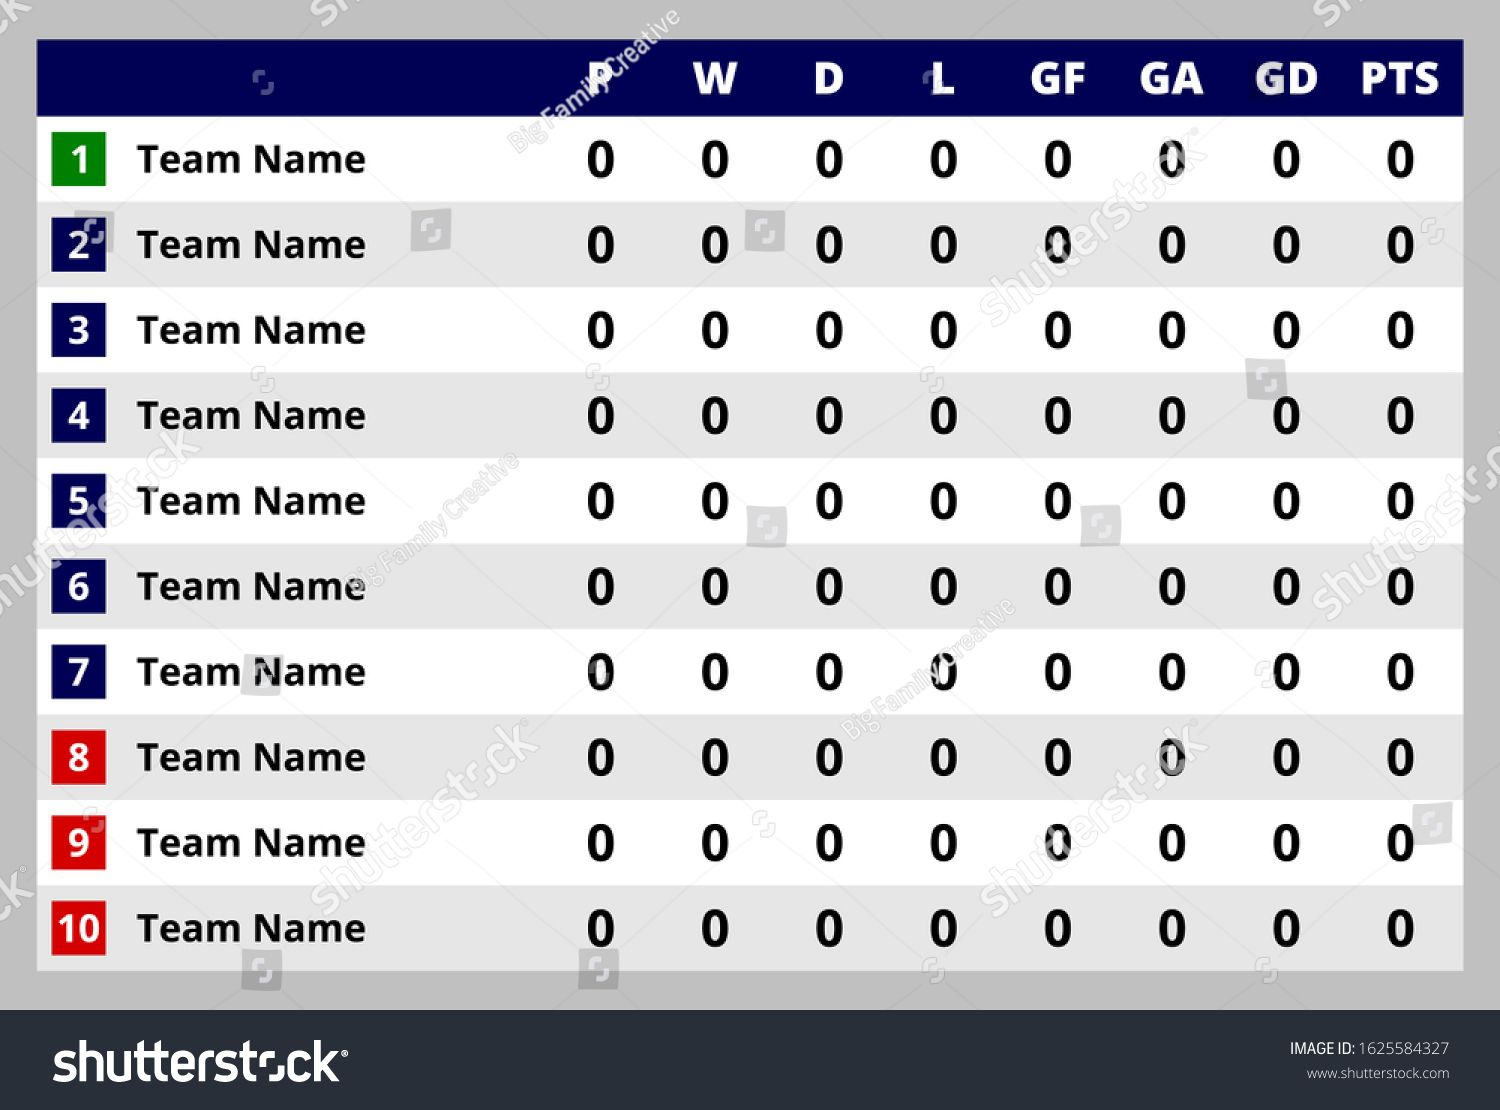 Simple Soccer Standings Vector Template Football Standings Table Ad Sponsored Standings Soccer Simple Vecto In 2020 Soccer Standings Templates Resume Templates